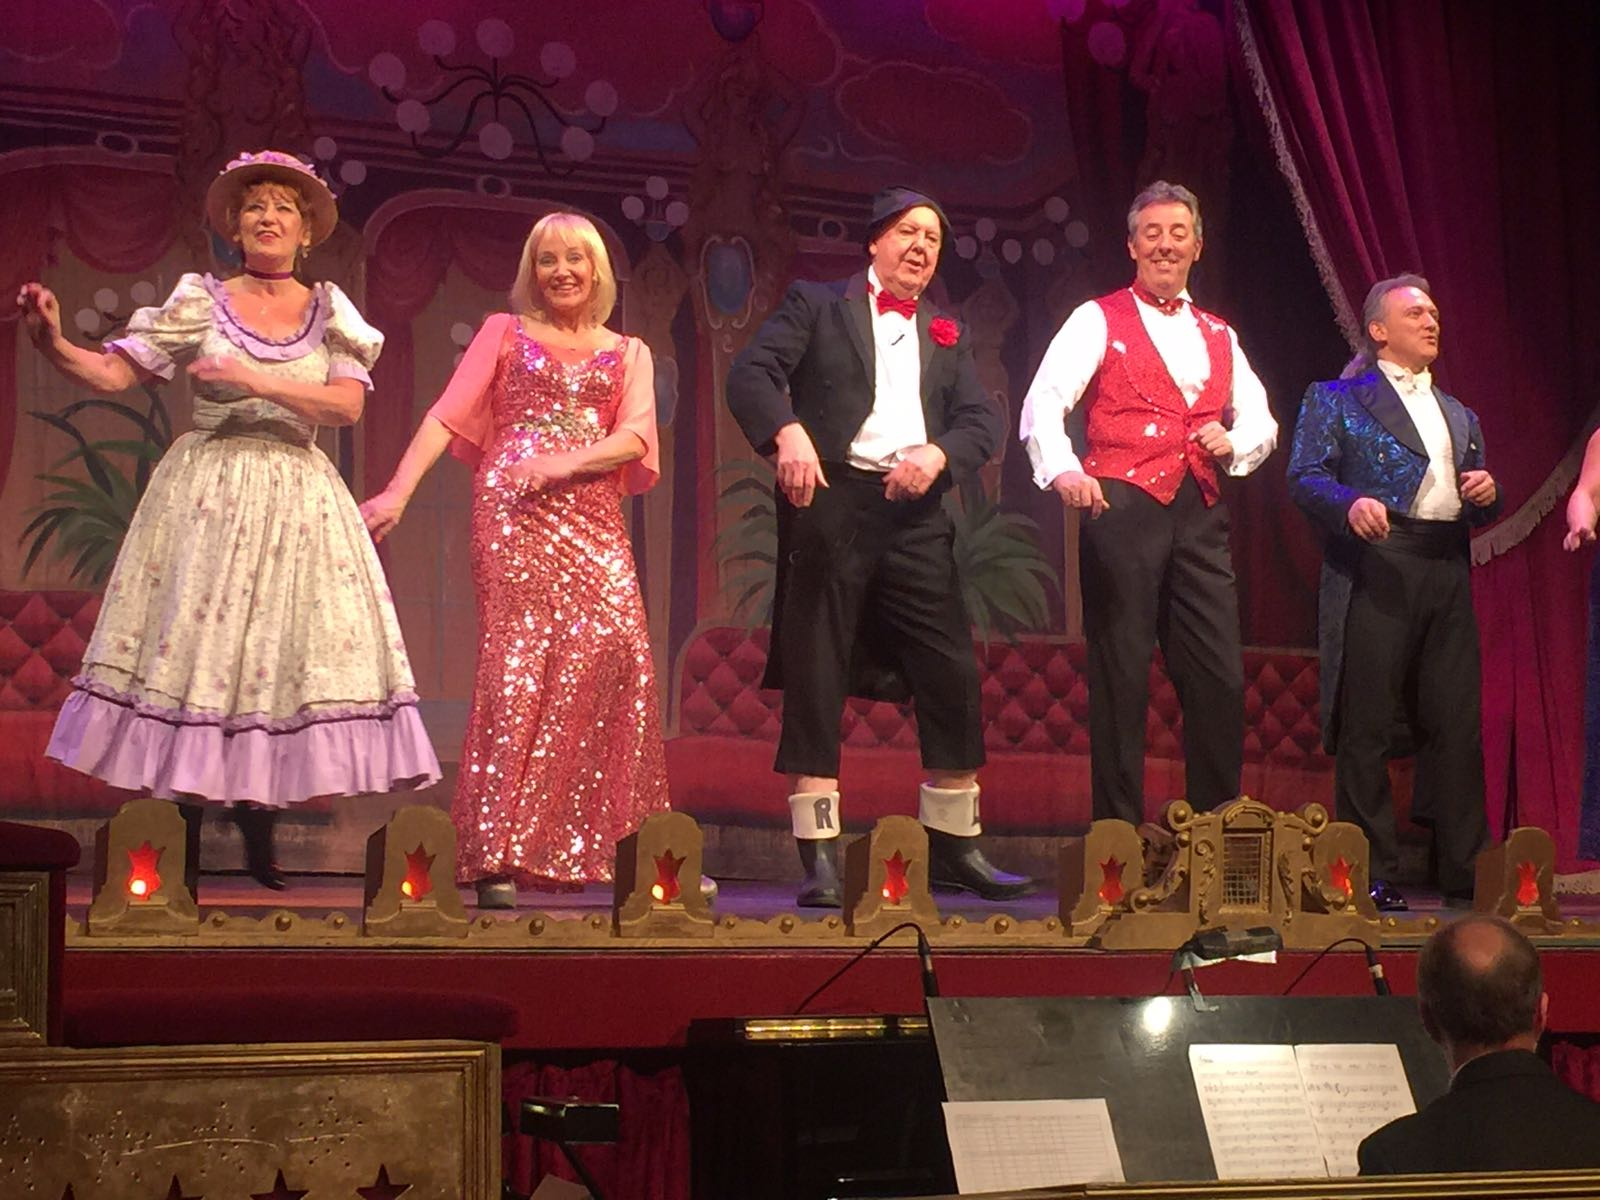 The Good Old Days show at the City Varieties Music Hall in Leeds